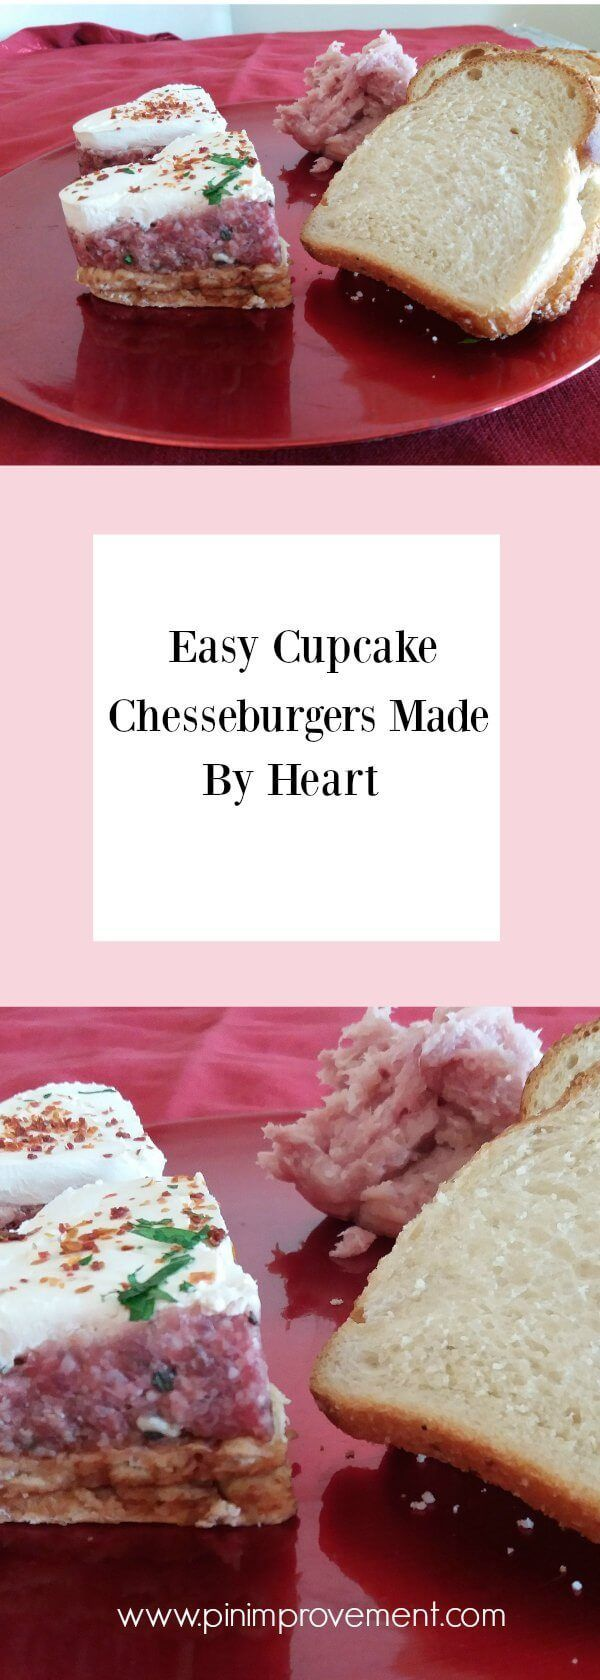 Easy Cupcake Chesseburgers Made By Heart